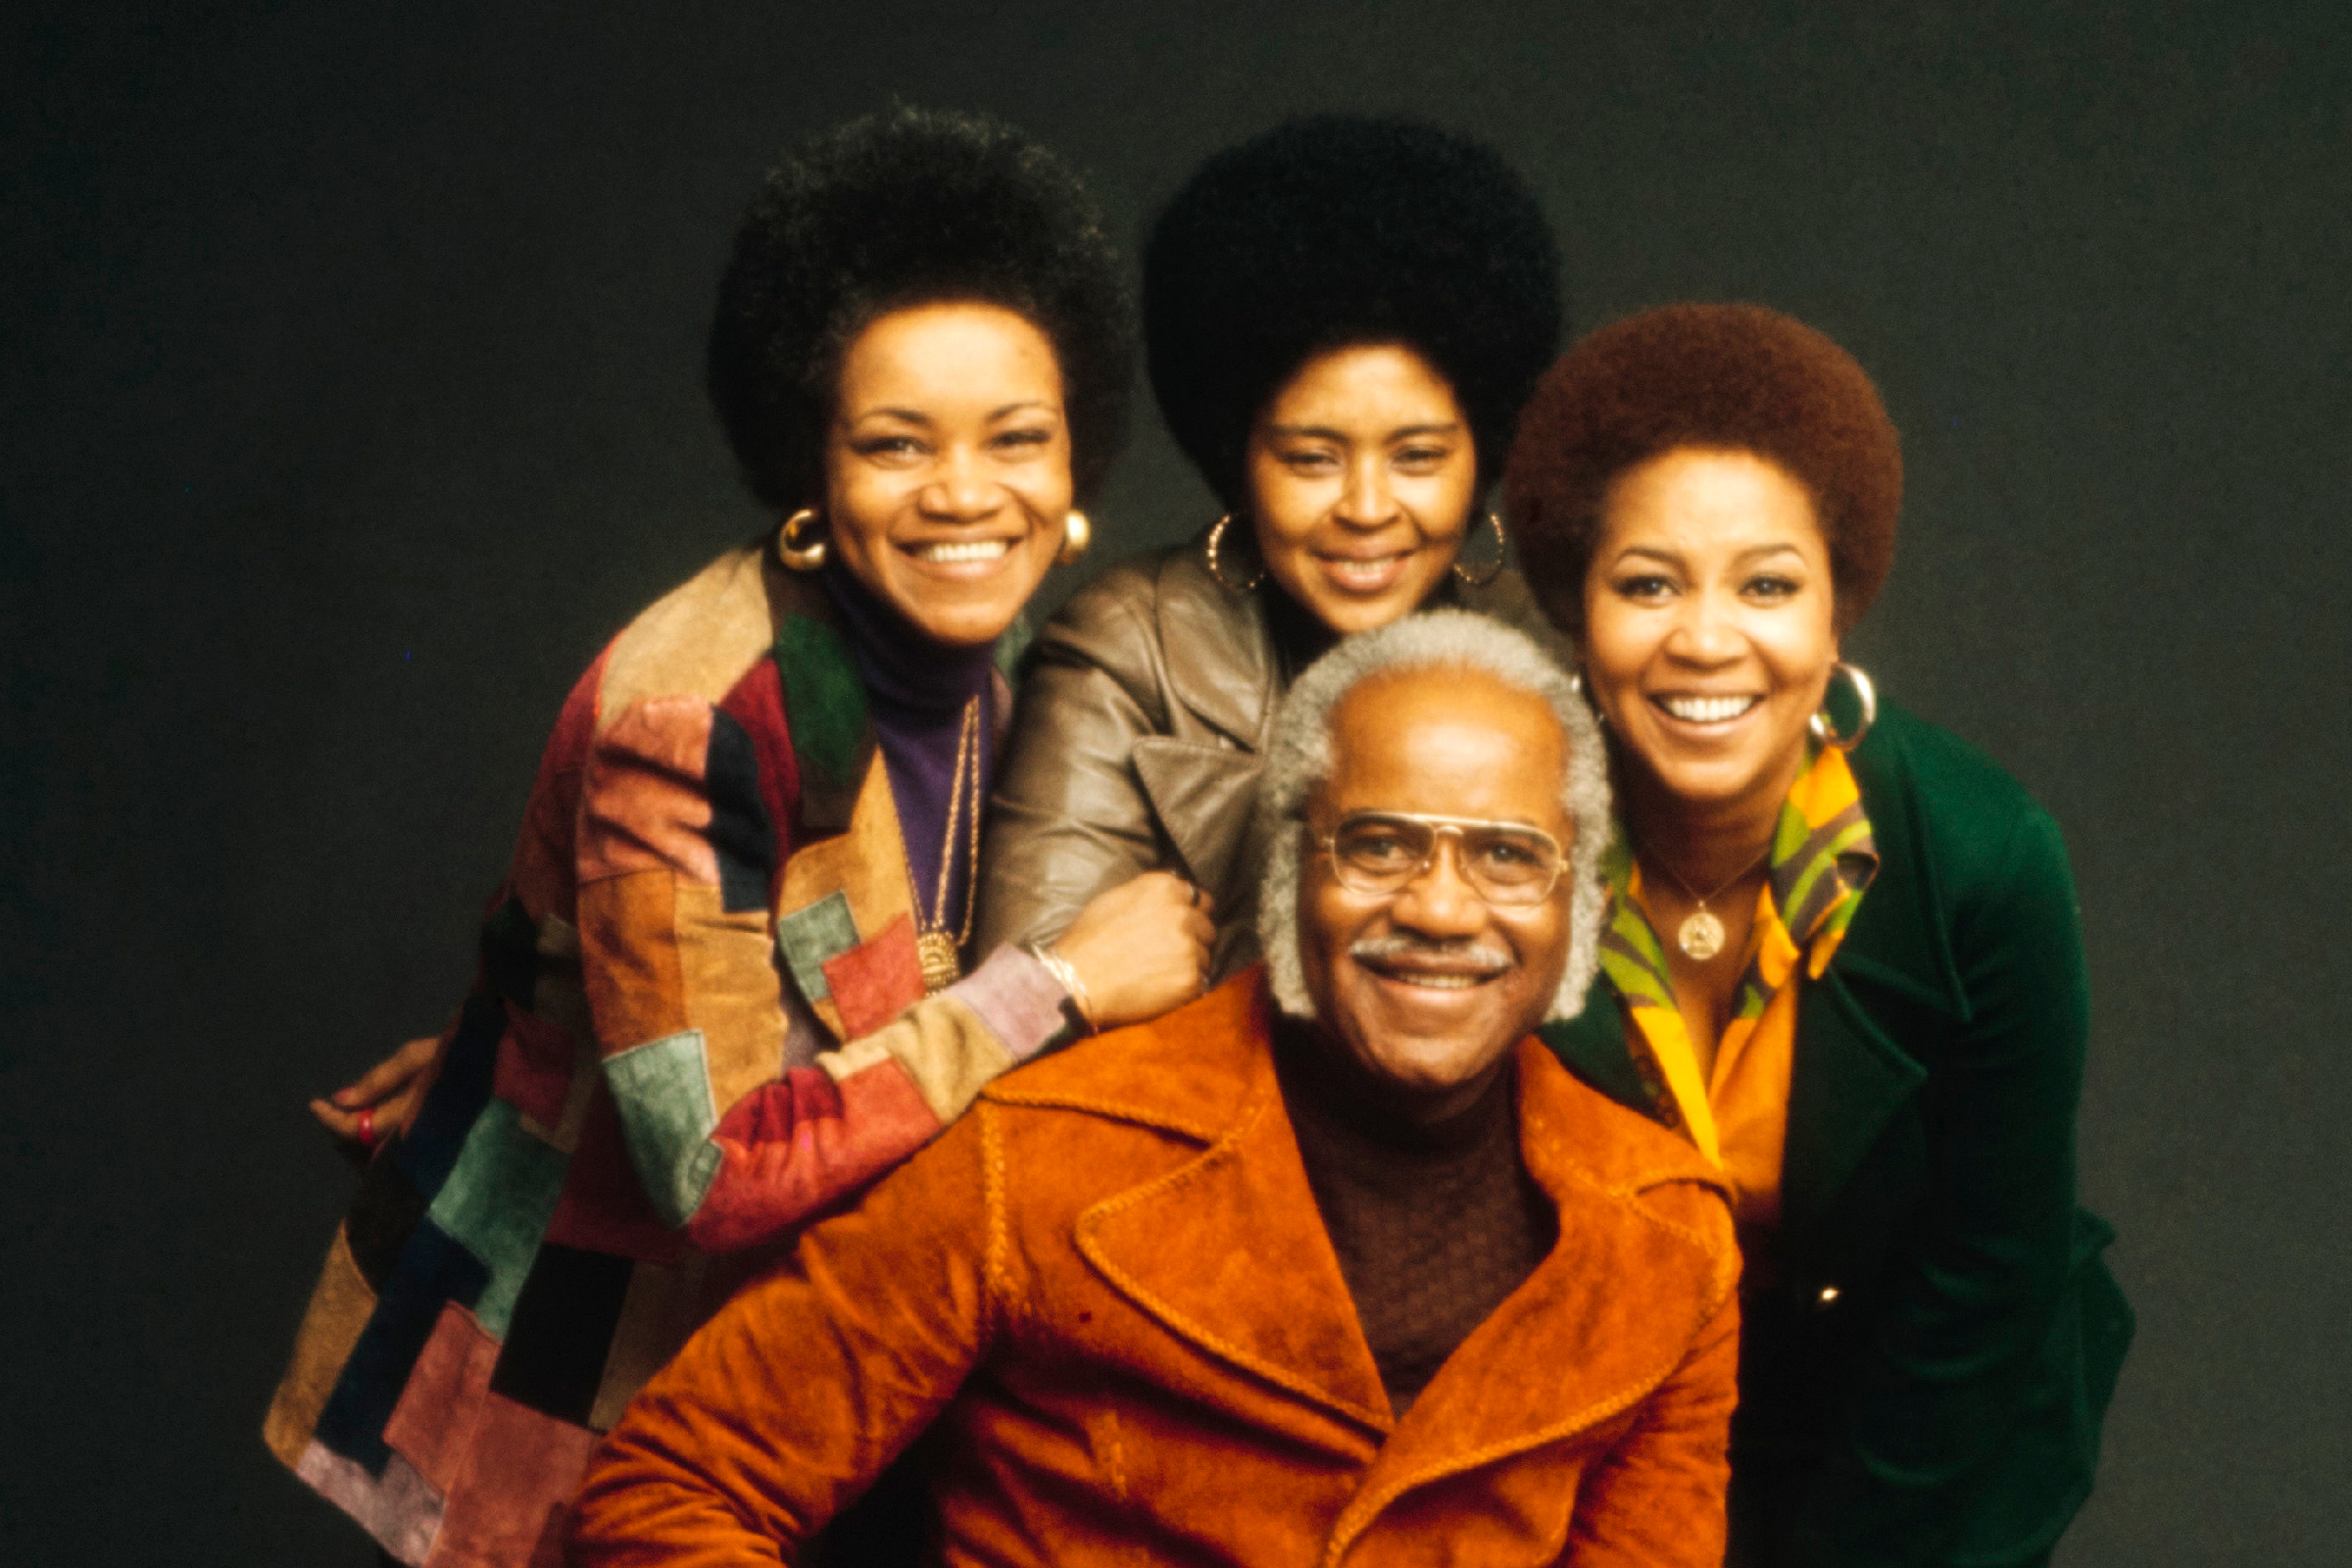 The Staple Singers' 'Come Go With Me: The Stax Collection' Brings the Gospel-Soul Band's Peak Years into Focus